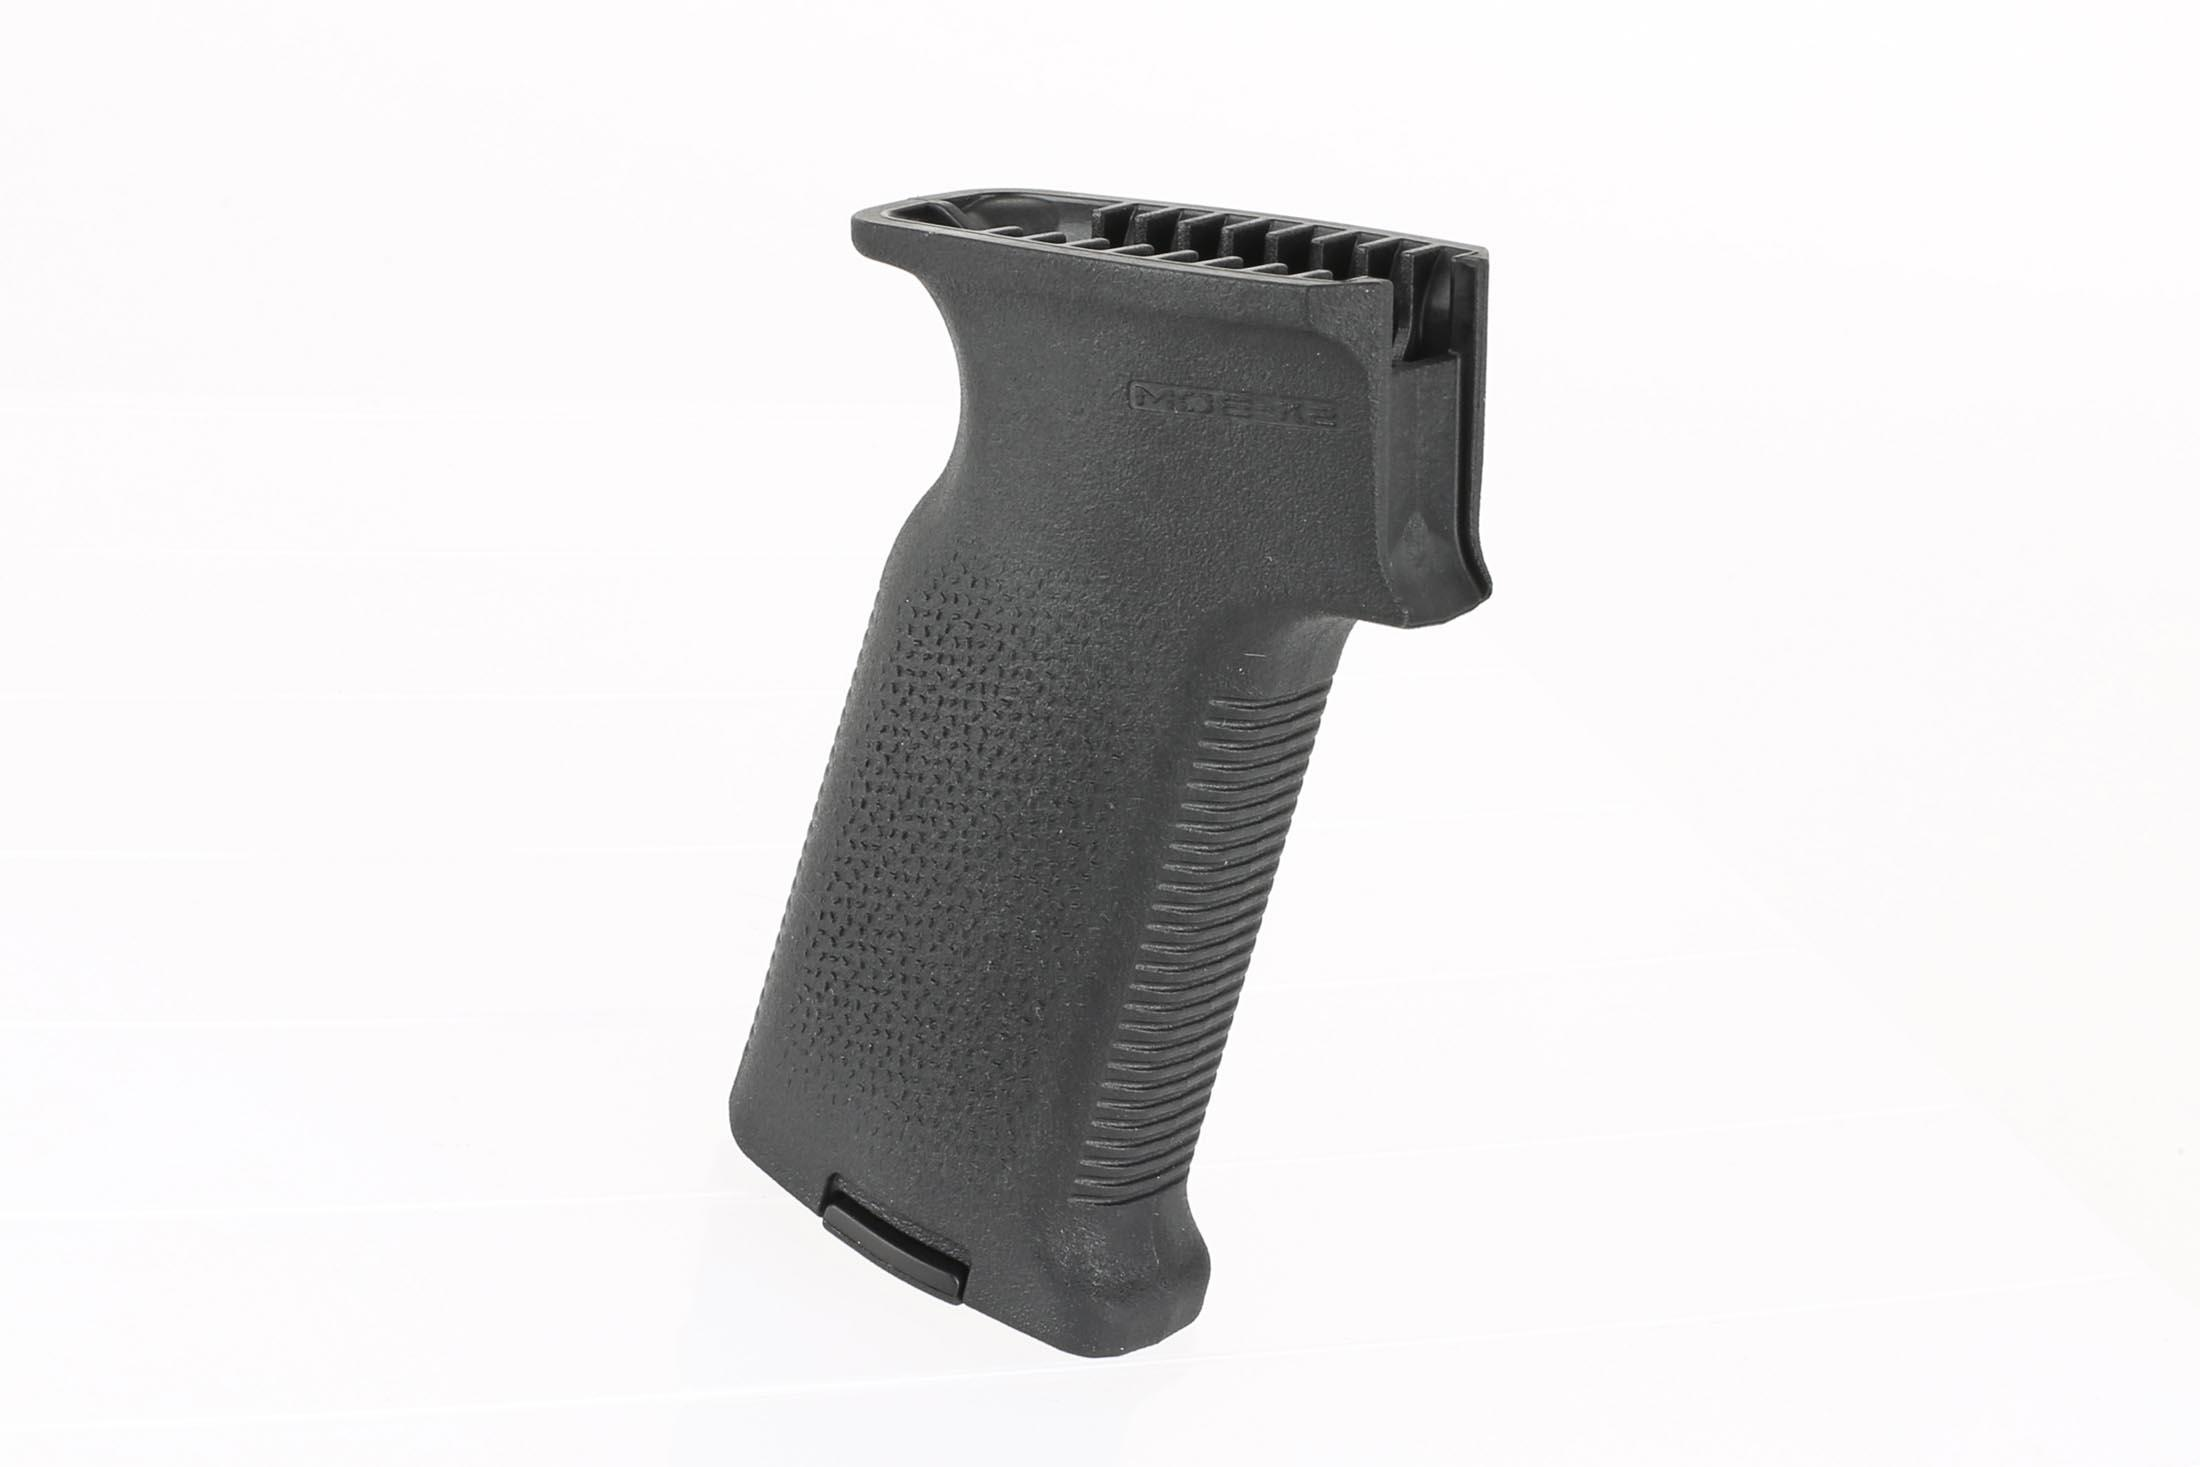 The Magpul MOE K2 AK-47 pistol grip is compatible with milled and stamped receivers